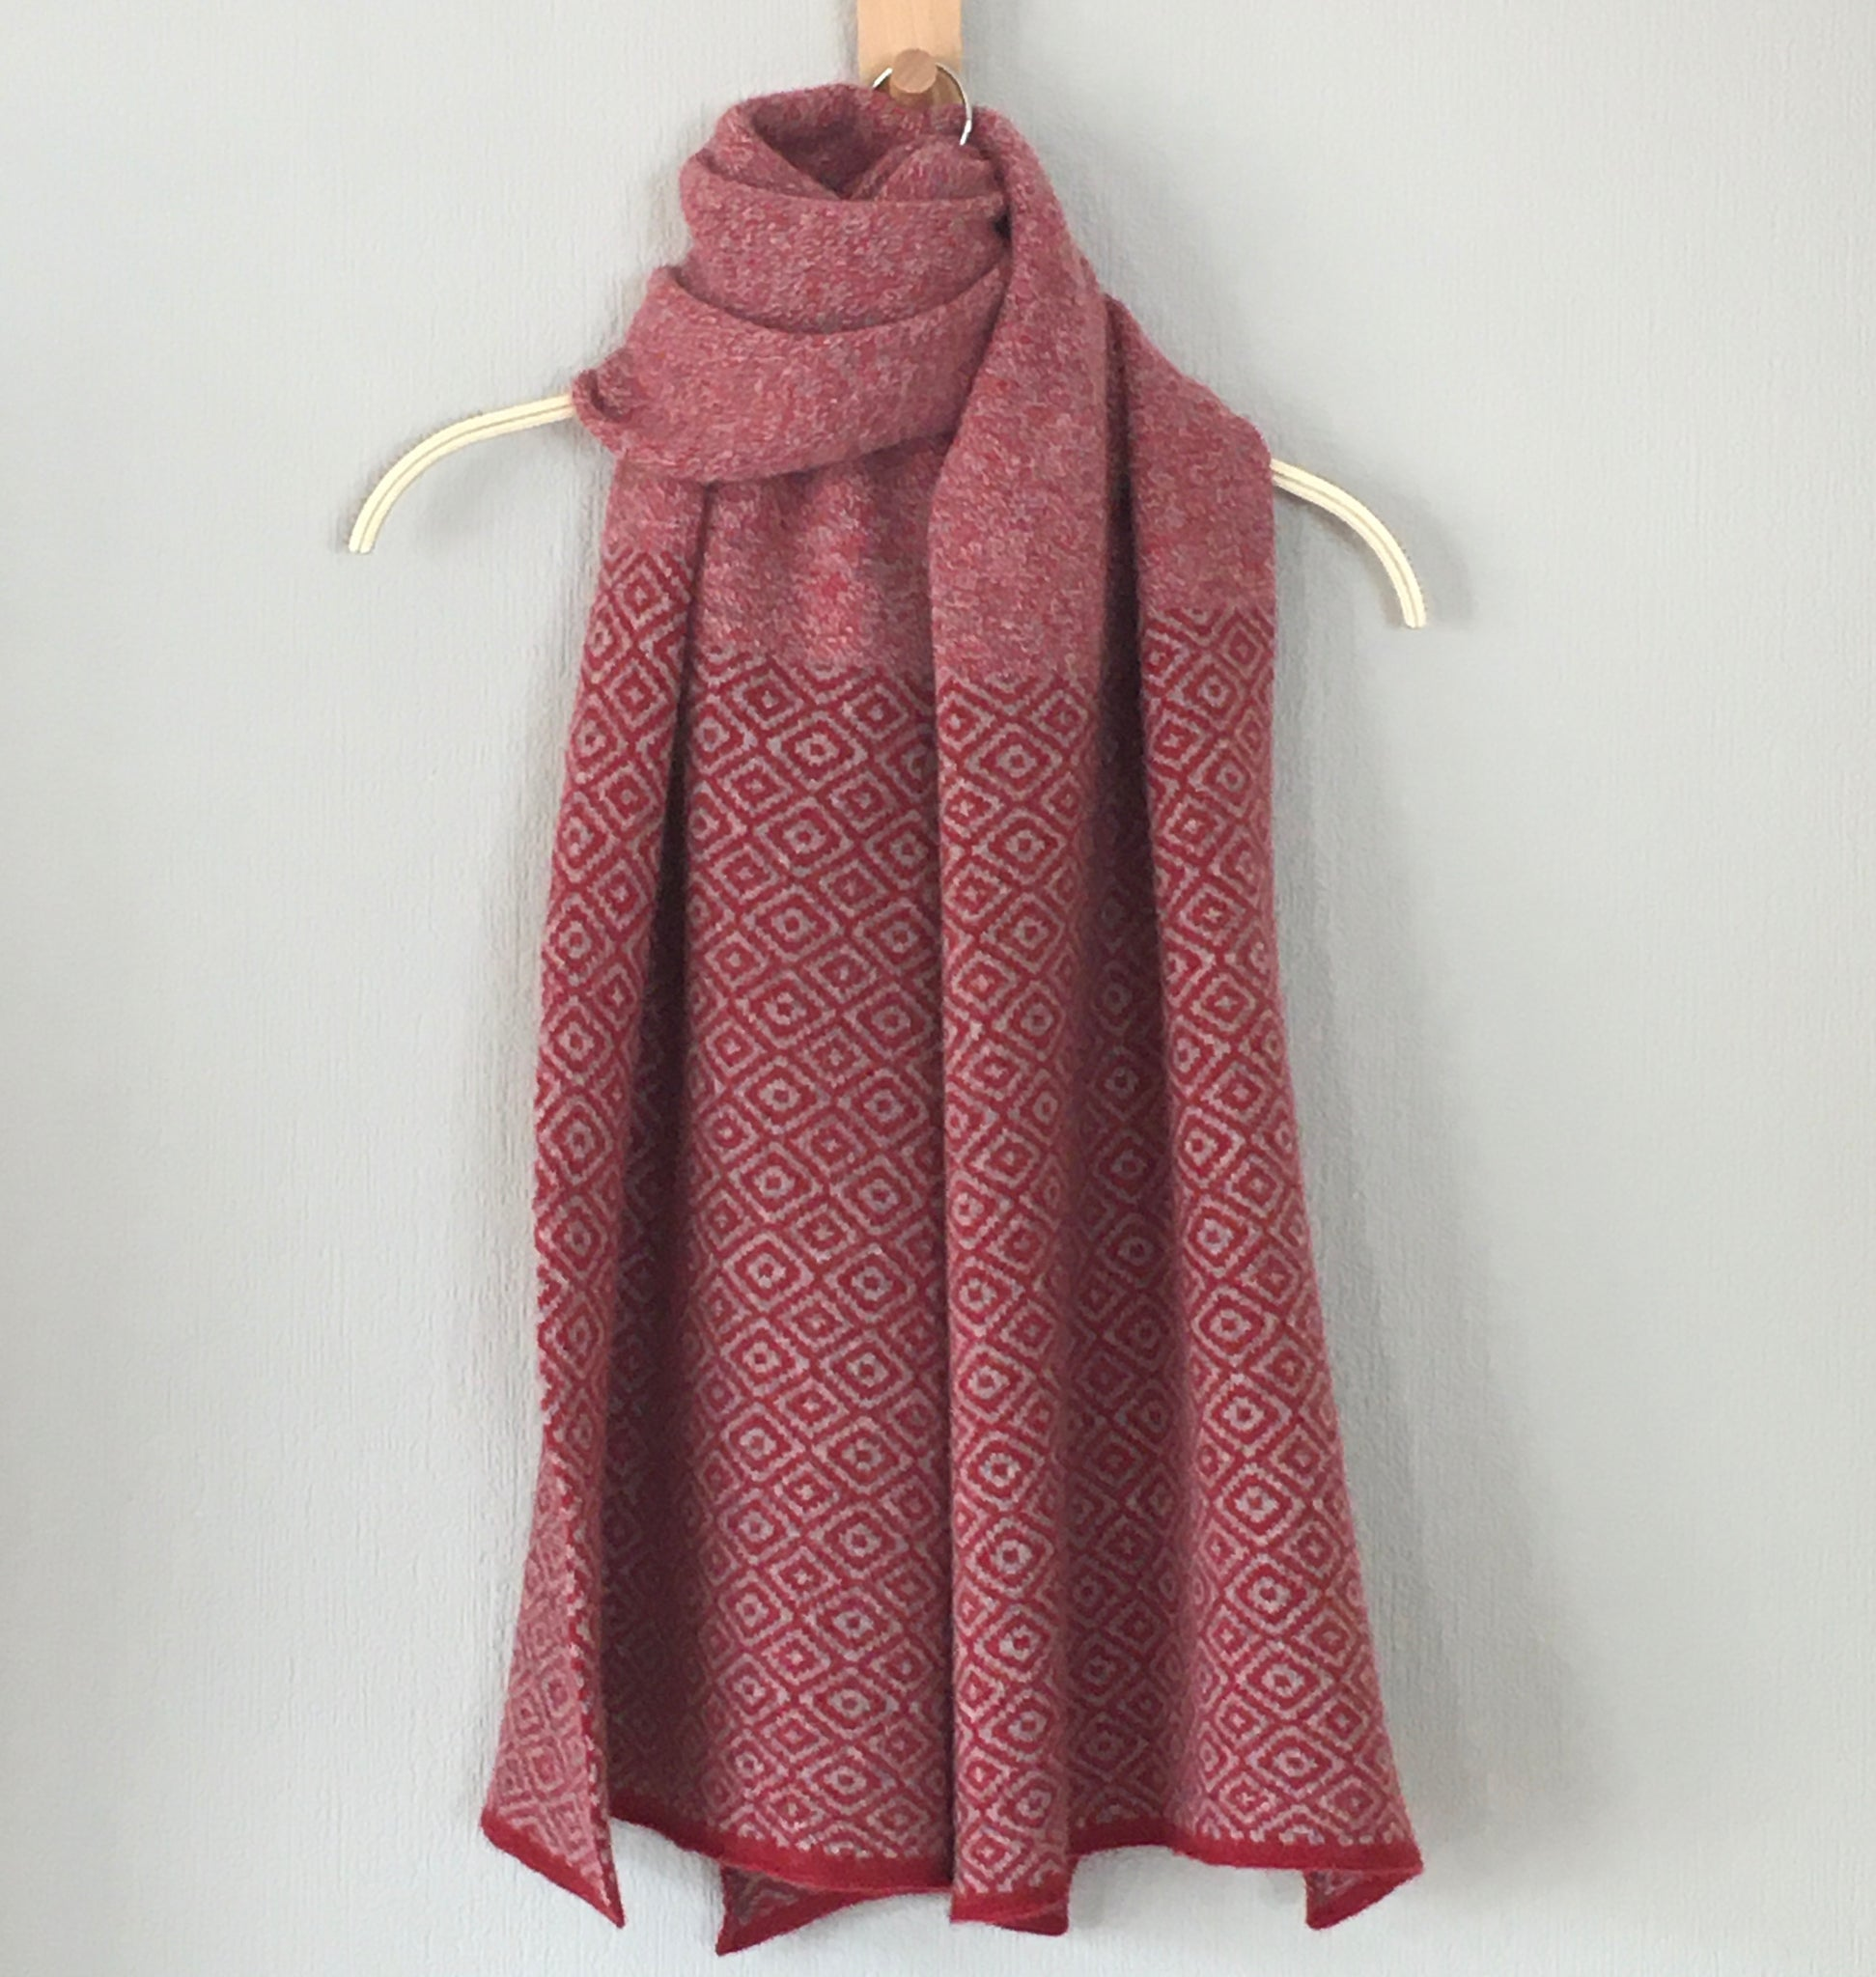 Shawl scarf merino lambswool marled berry red, silver grey large Fair Isle Scandi Scarf